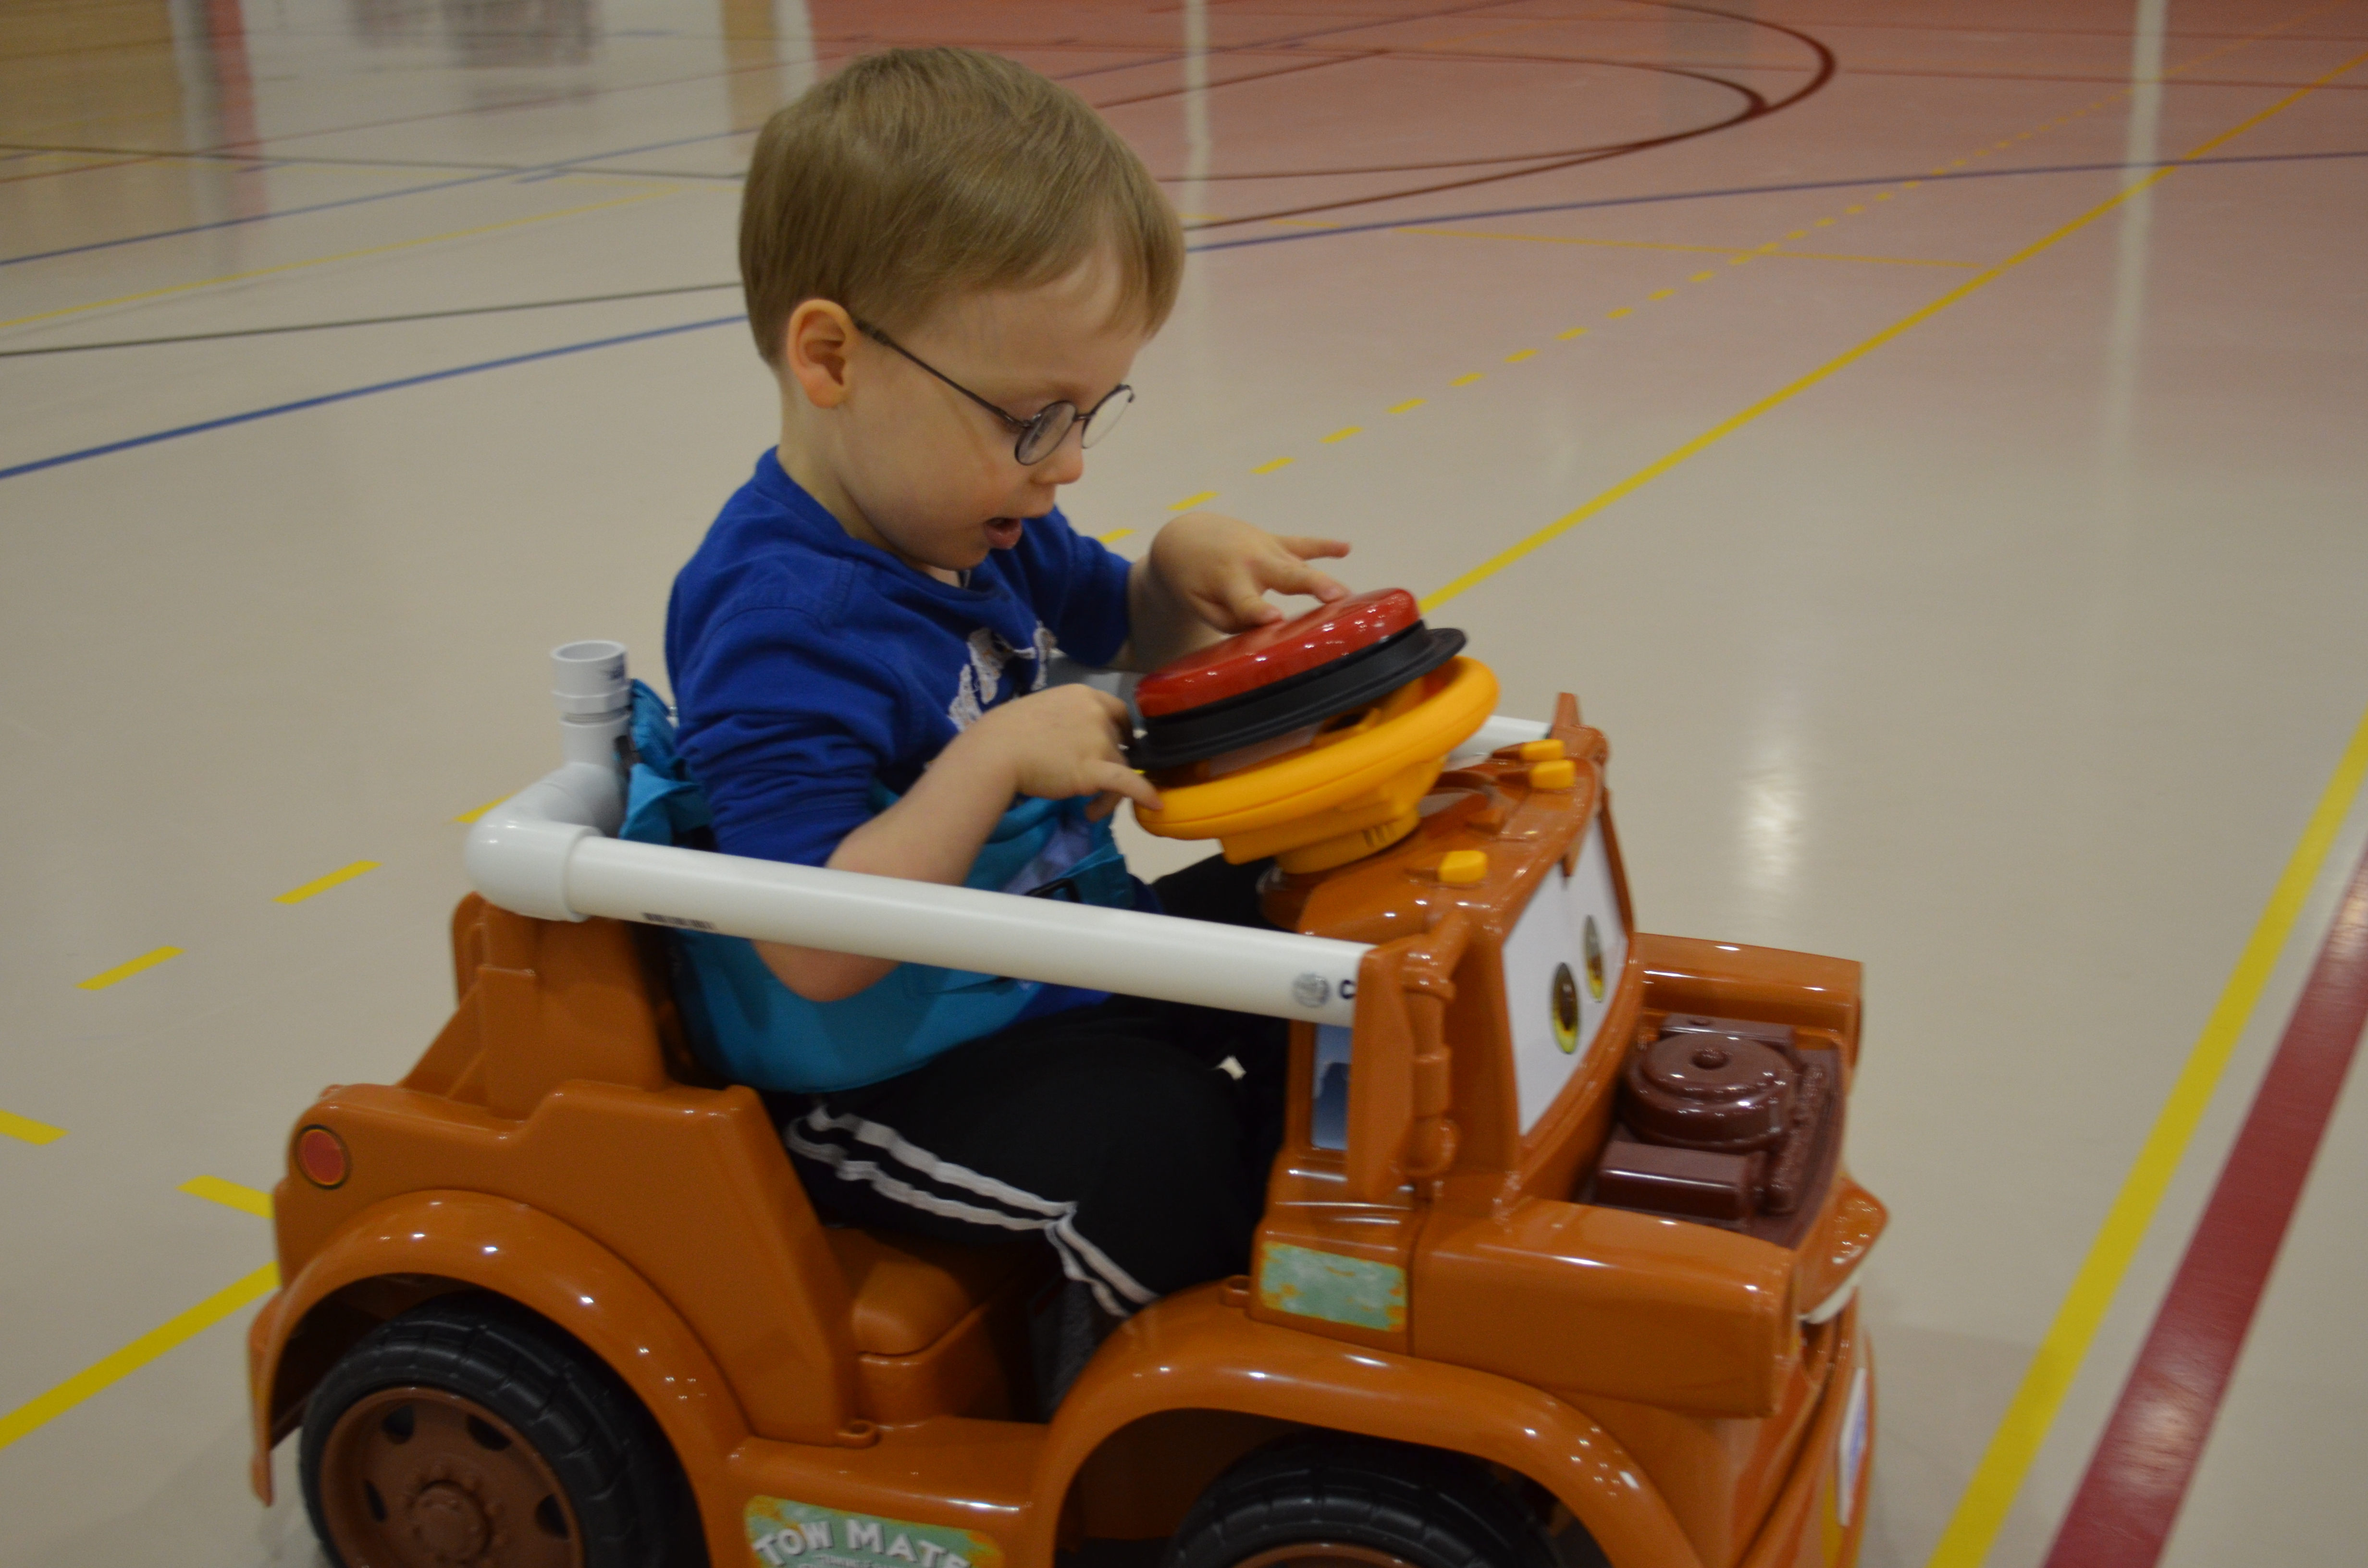 Wheels Up Cost Per Hour >> Power Wheels to Makeshift Power Wheelchairs – A Day in the Life at UNMC